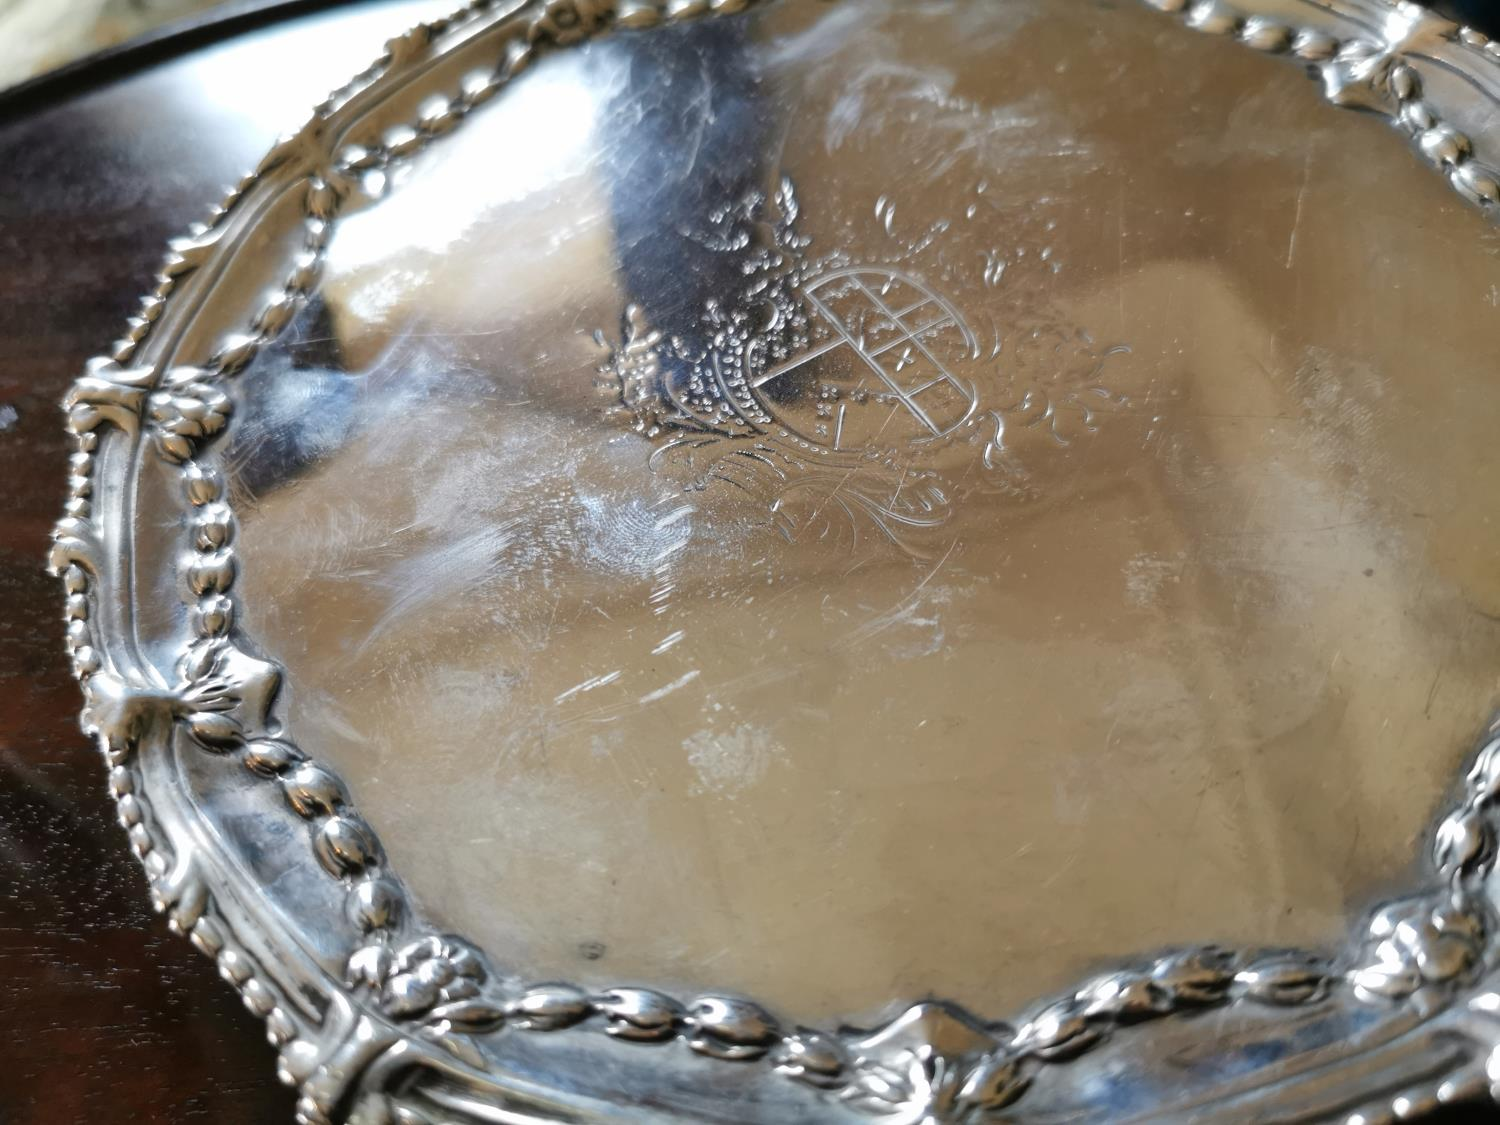 Pair of English silver dishes - Image 2 of 3